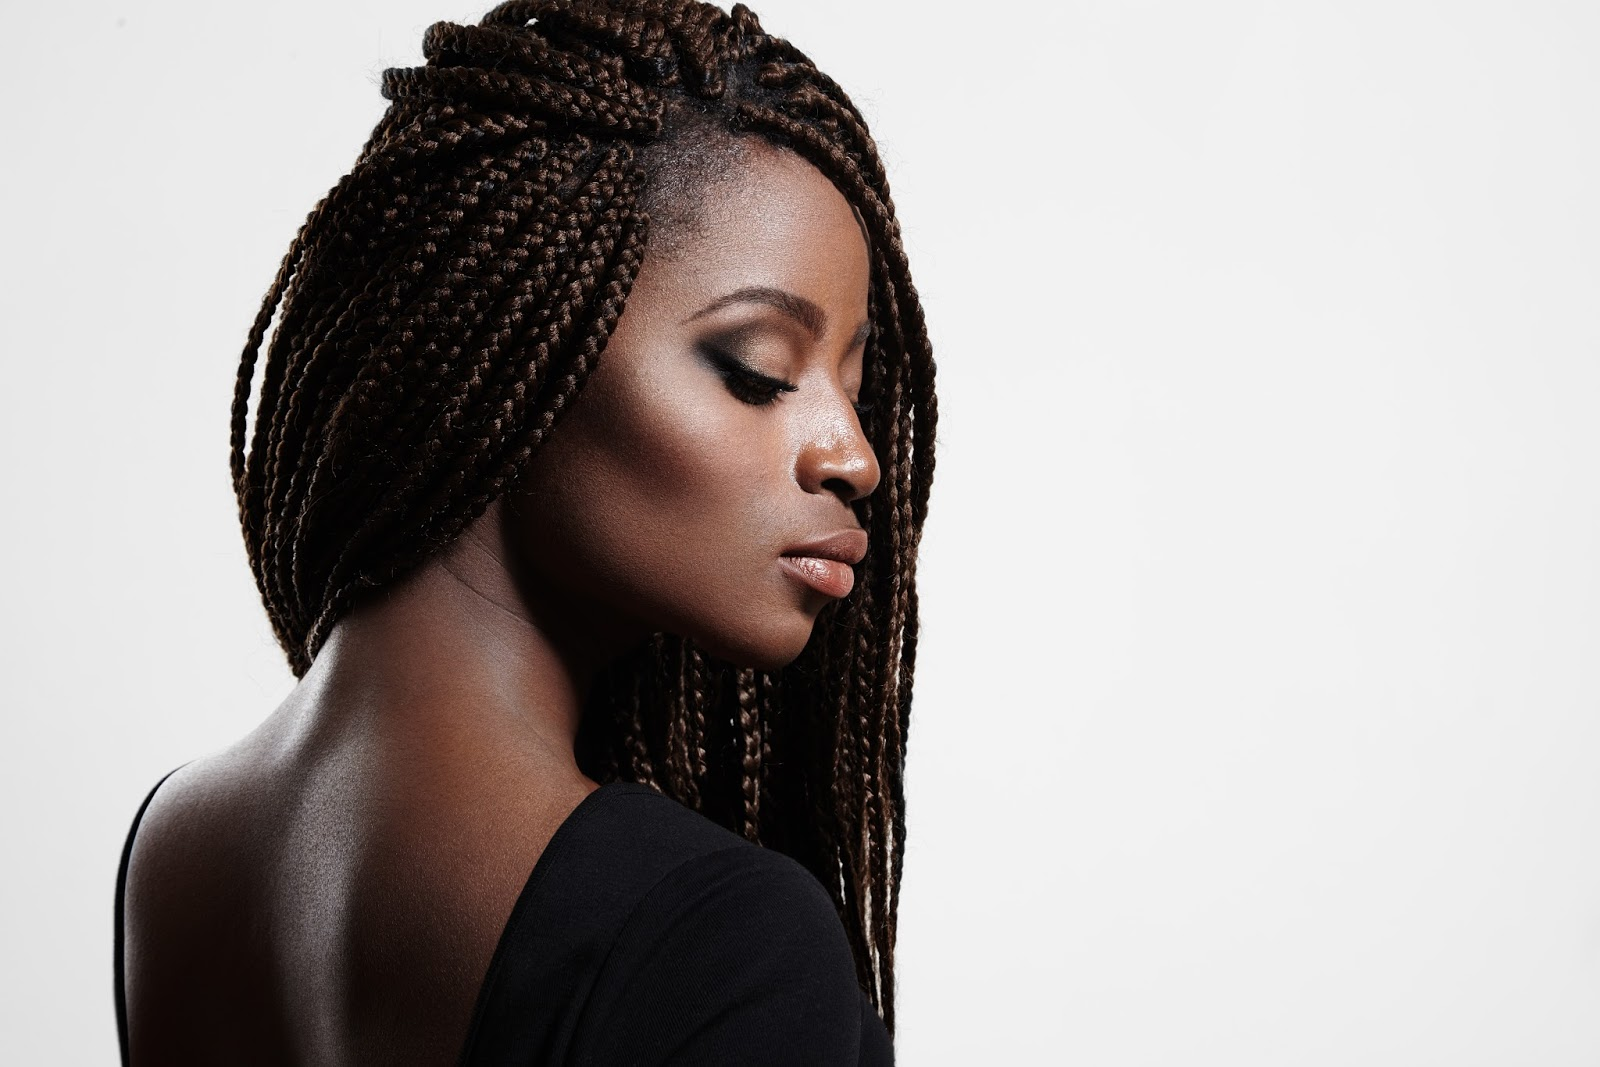 Black Hairstyles With Side Braids: How To Wash Braided Hair, The Right Way